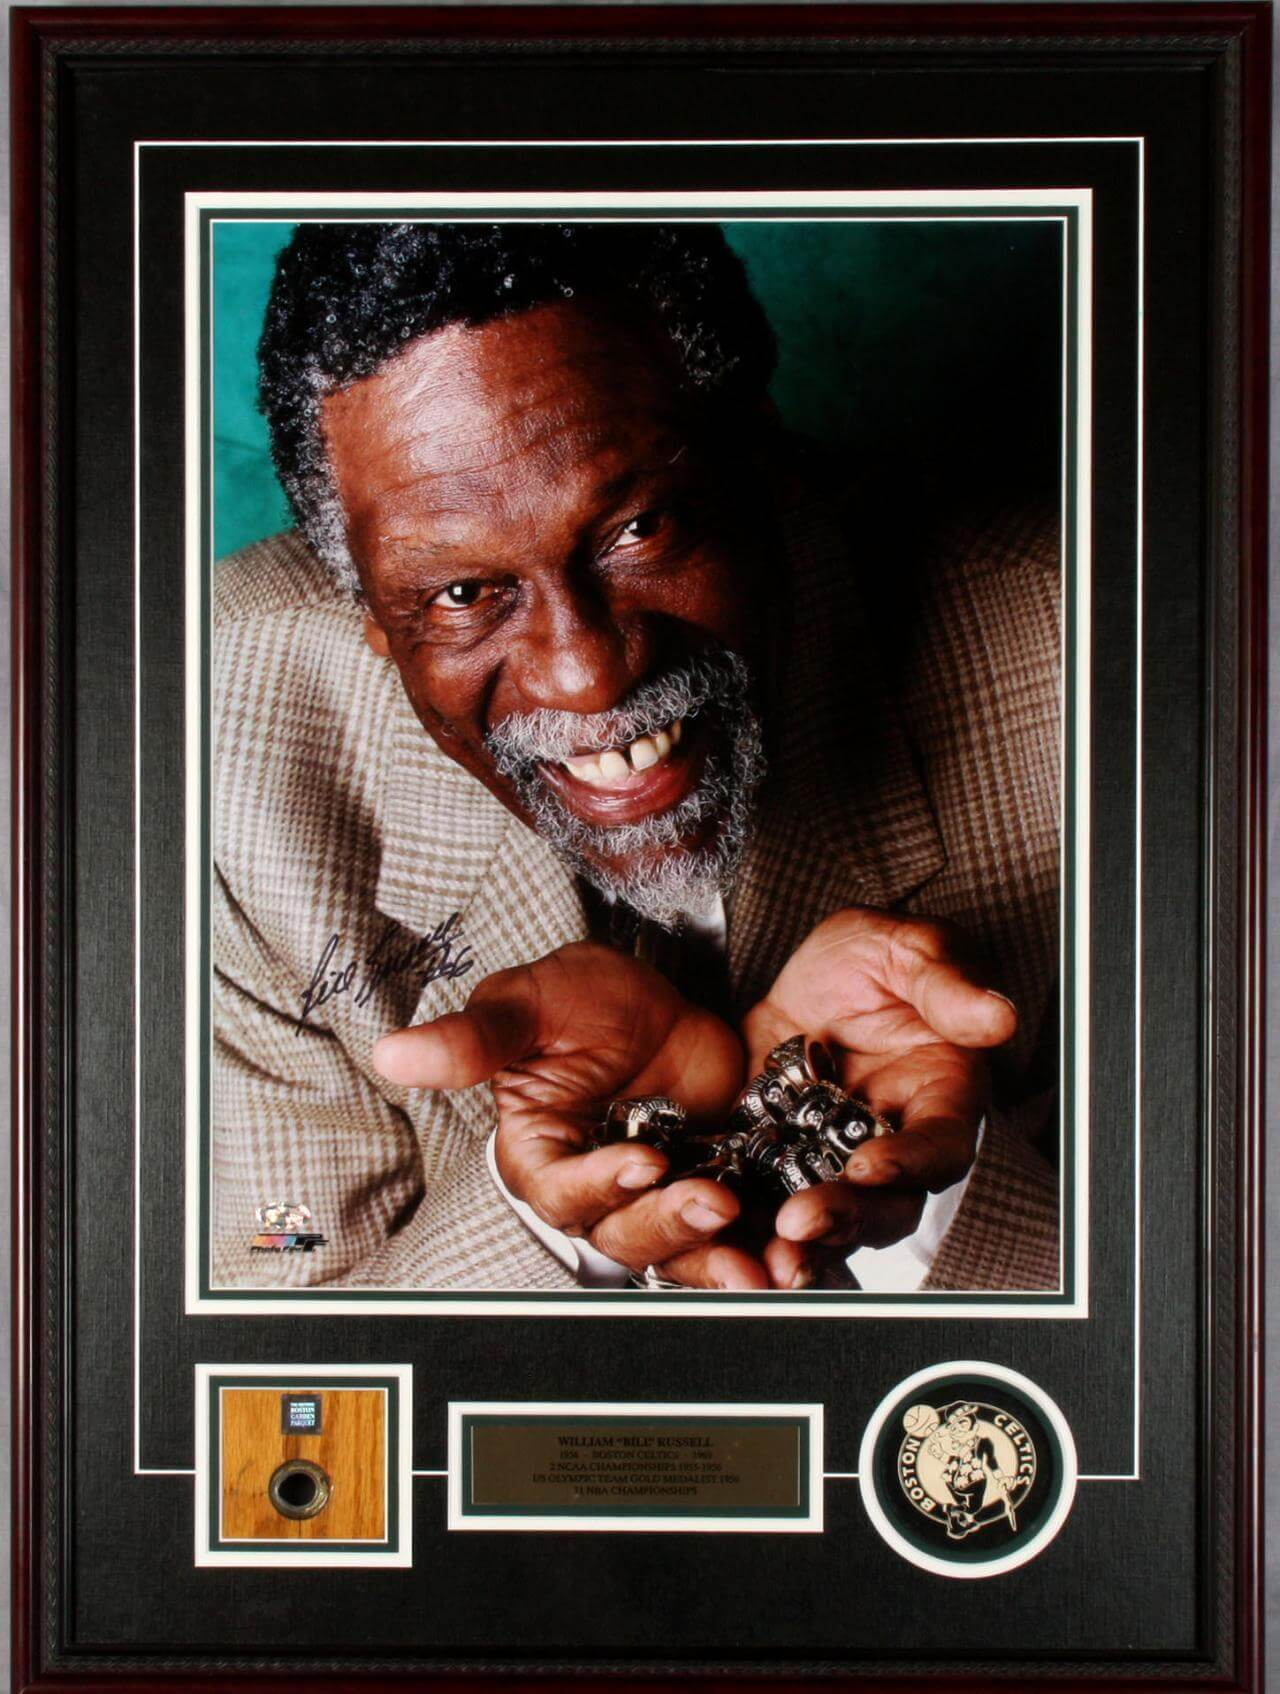 William Bill Russell Signed 16×20 Full Color Display with Boston Garden Floor Marquet (tile) Bonus Players Letter signed By Bill Russell  COA & Hologram